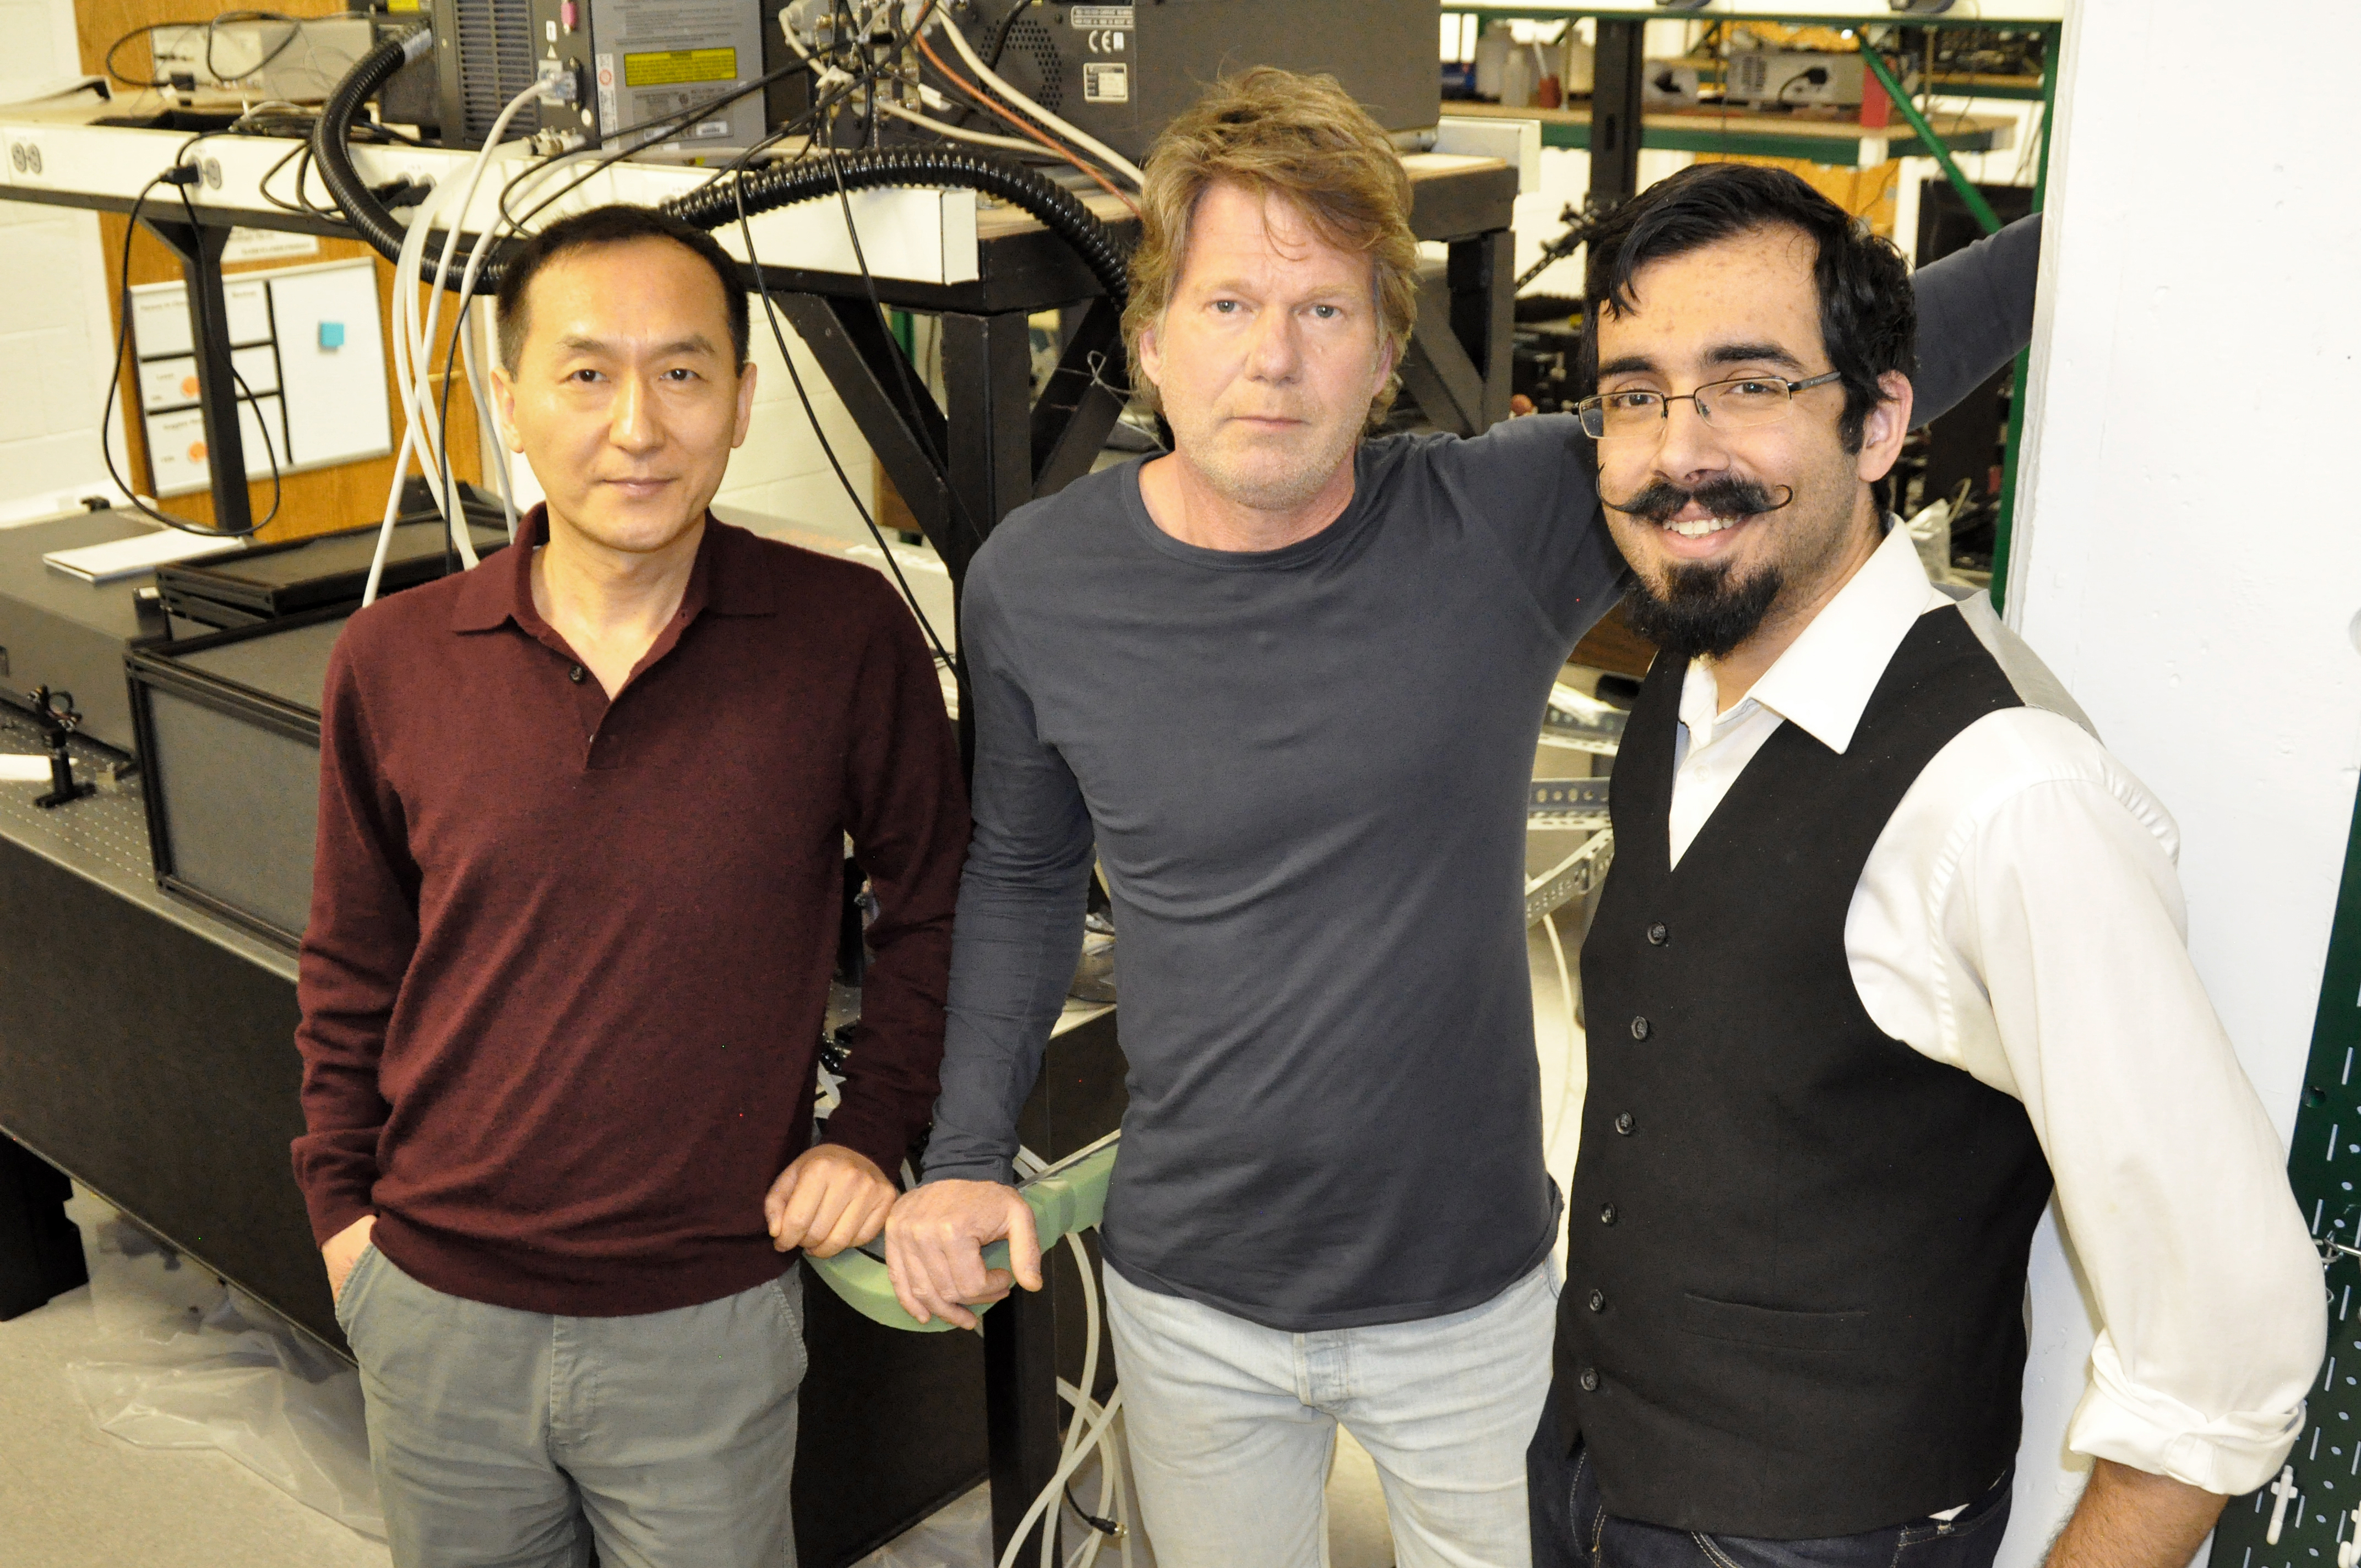 Prof. Chunlei Guo, Rubins J. Spaans and Erik Garcell in the lab in Rochester NY (photo courtesy of Prof. Chunlei Guo)